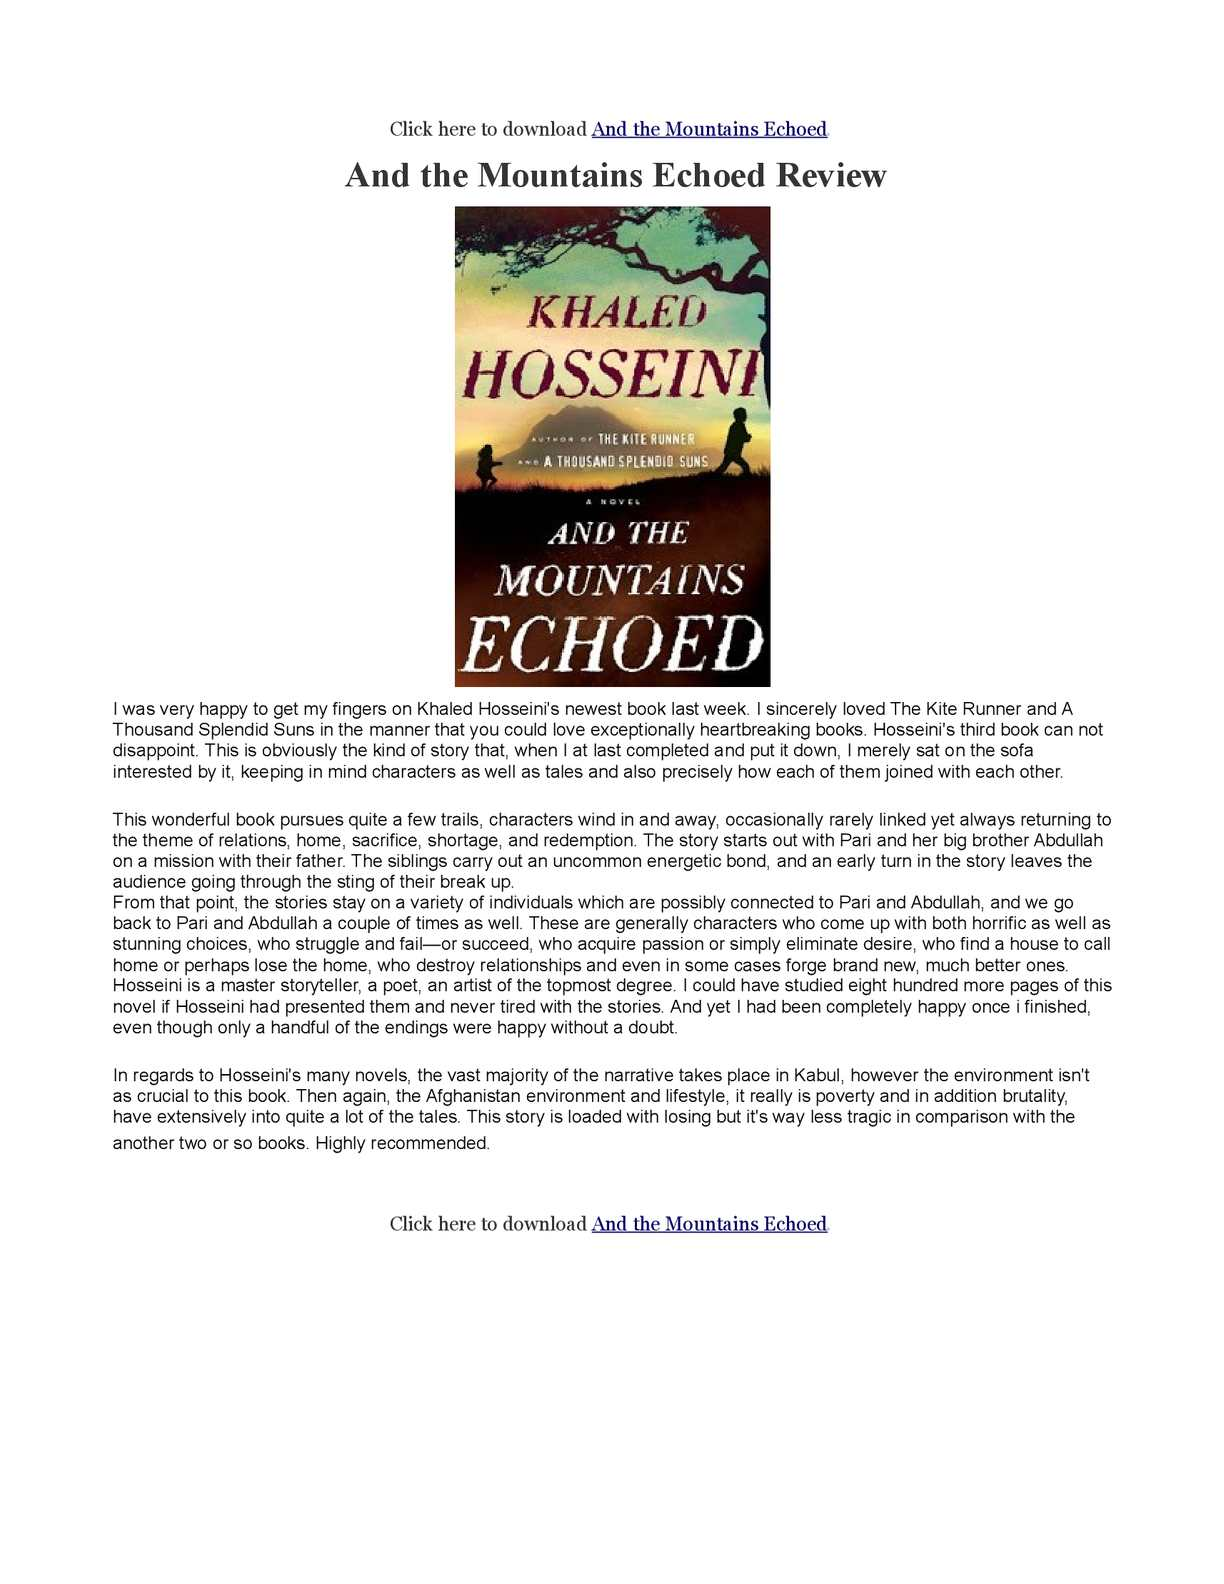 pdf mountains echoed and the book